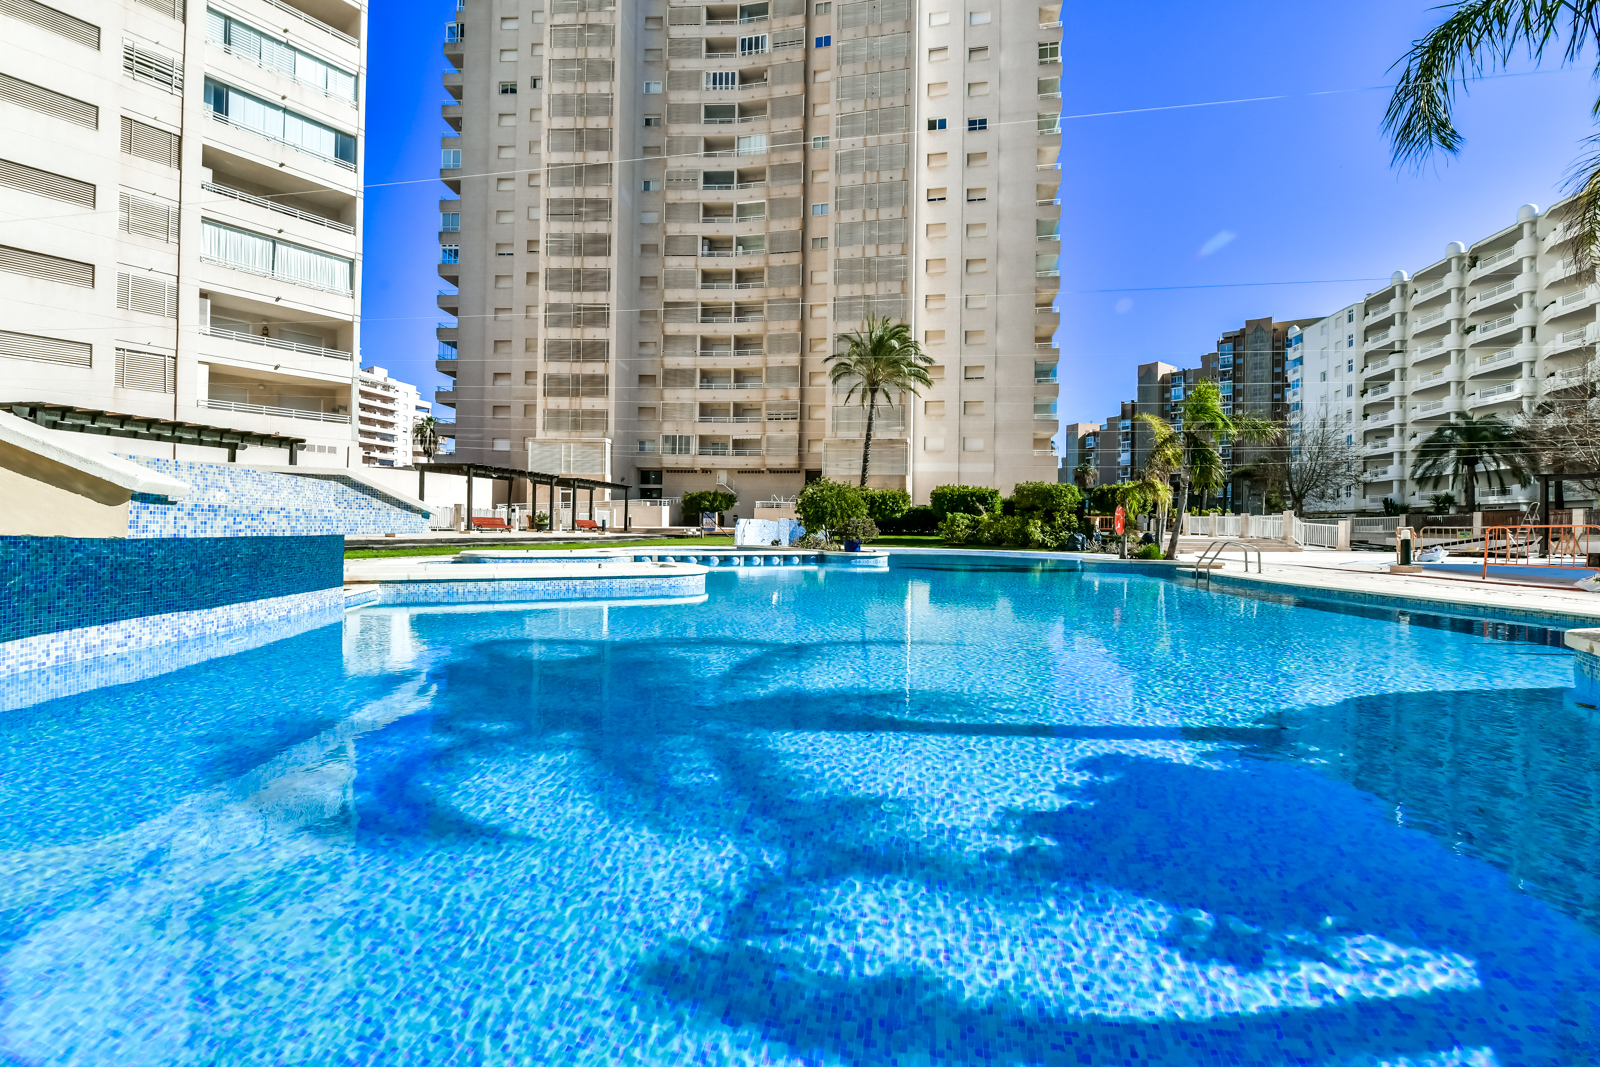 Apartamento Apolo XVI 1 4 19, Apartment  with communal pool in Calpe, on the Costa Blanca, Spain for 4 persons.....